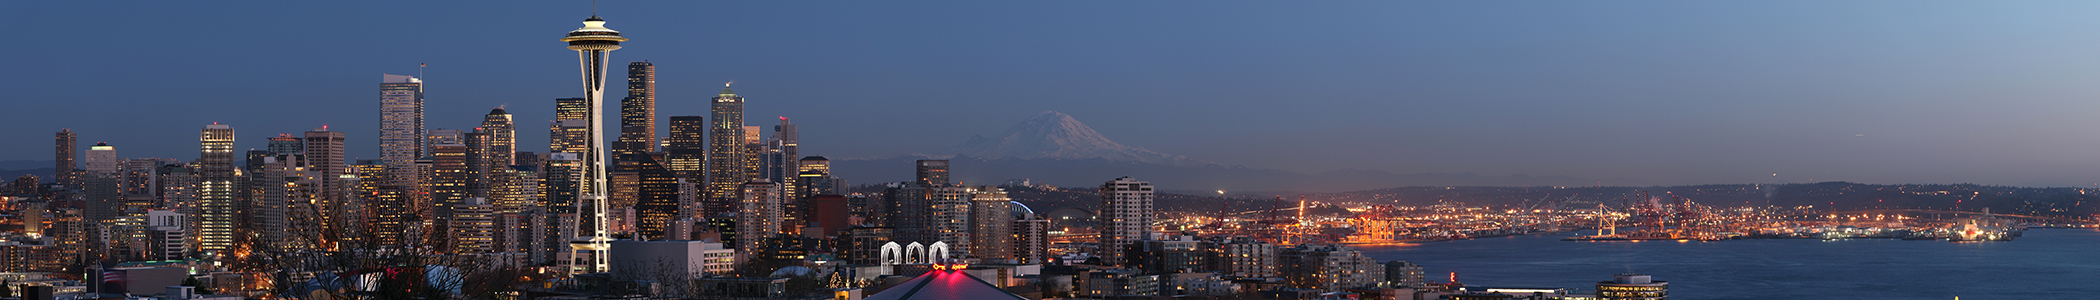 Skyline of Seattle, Washington, United States, with Mount Rainier in the background.